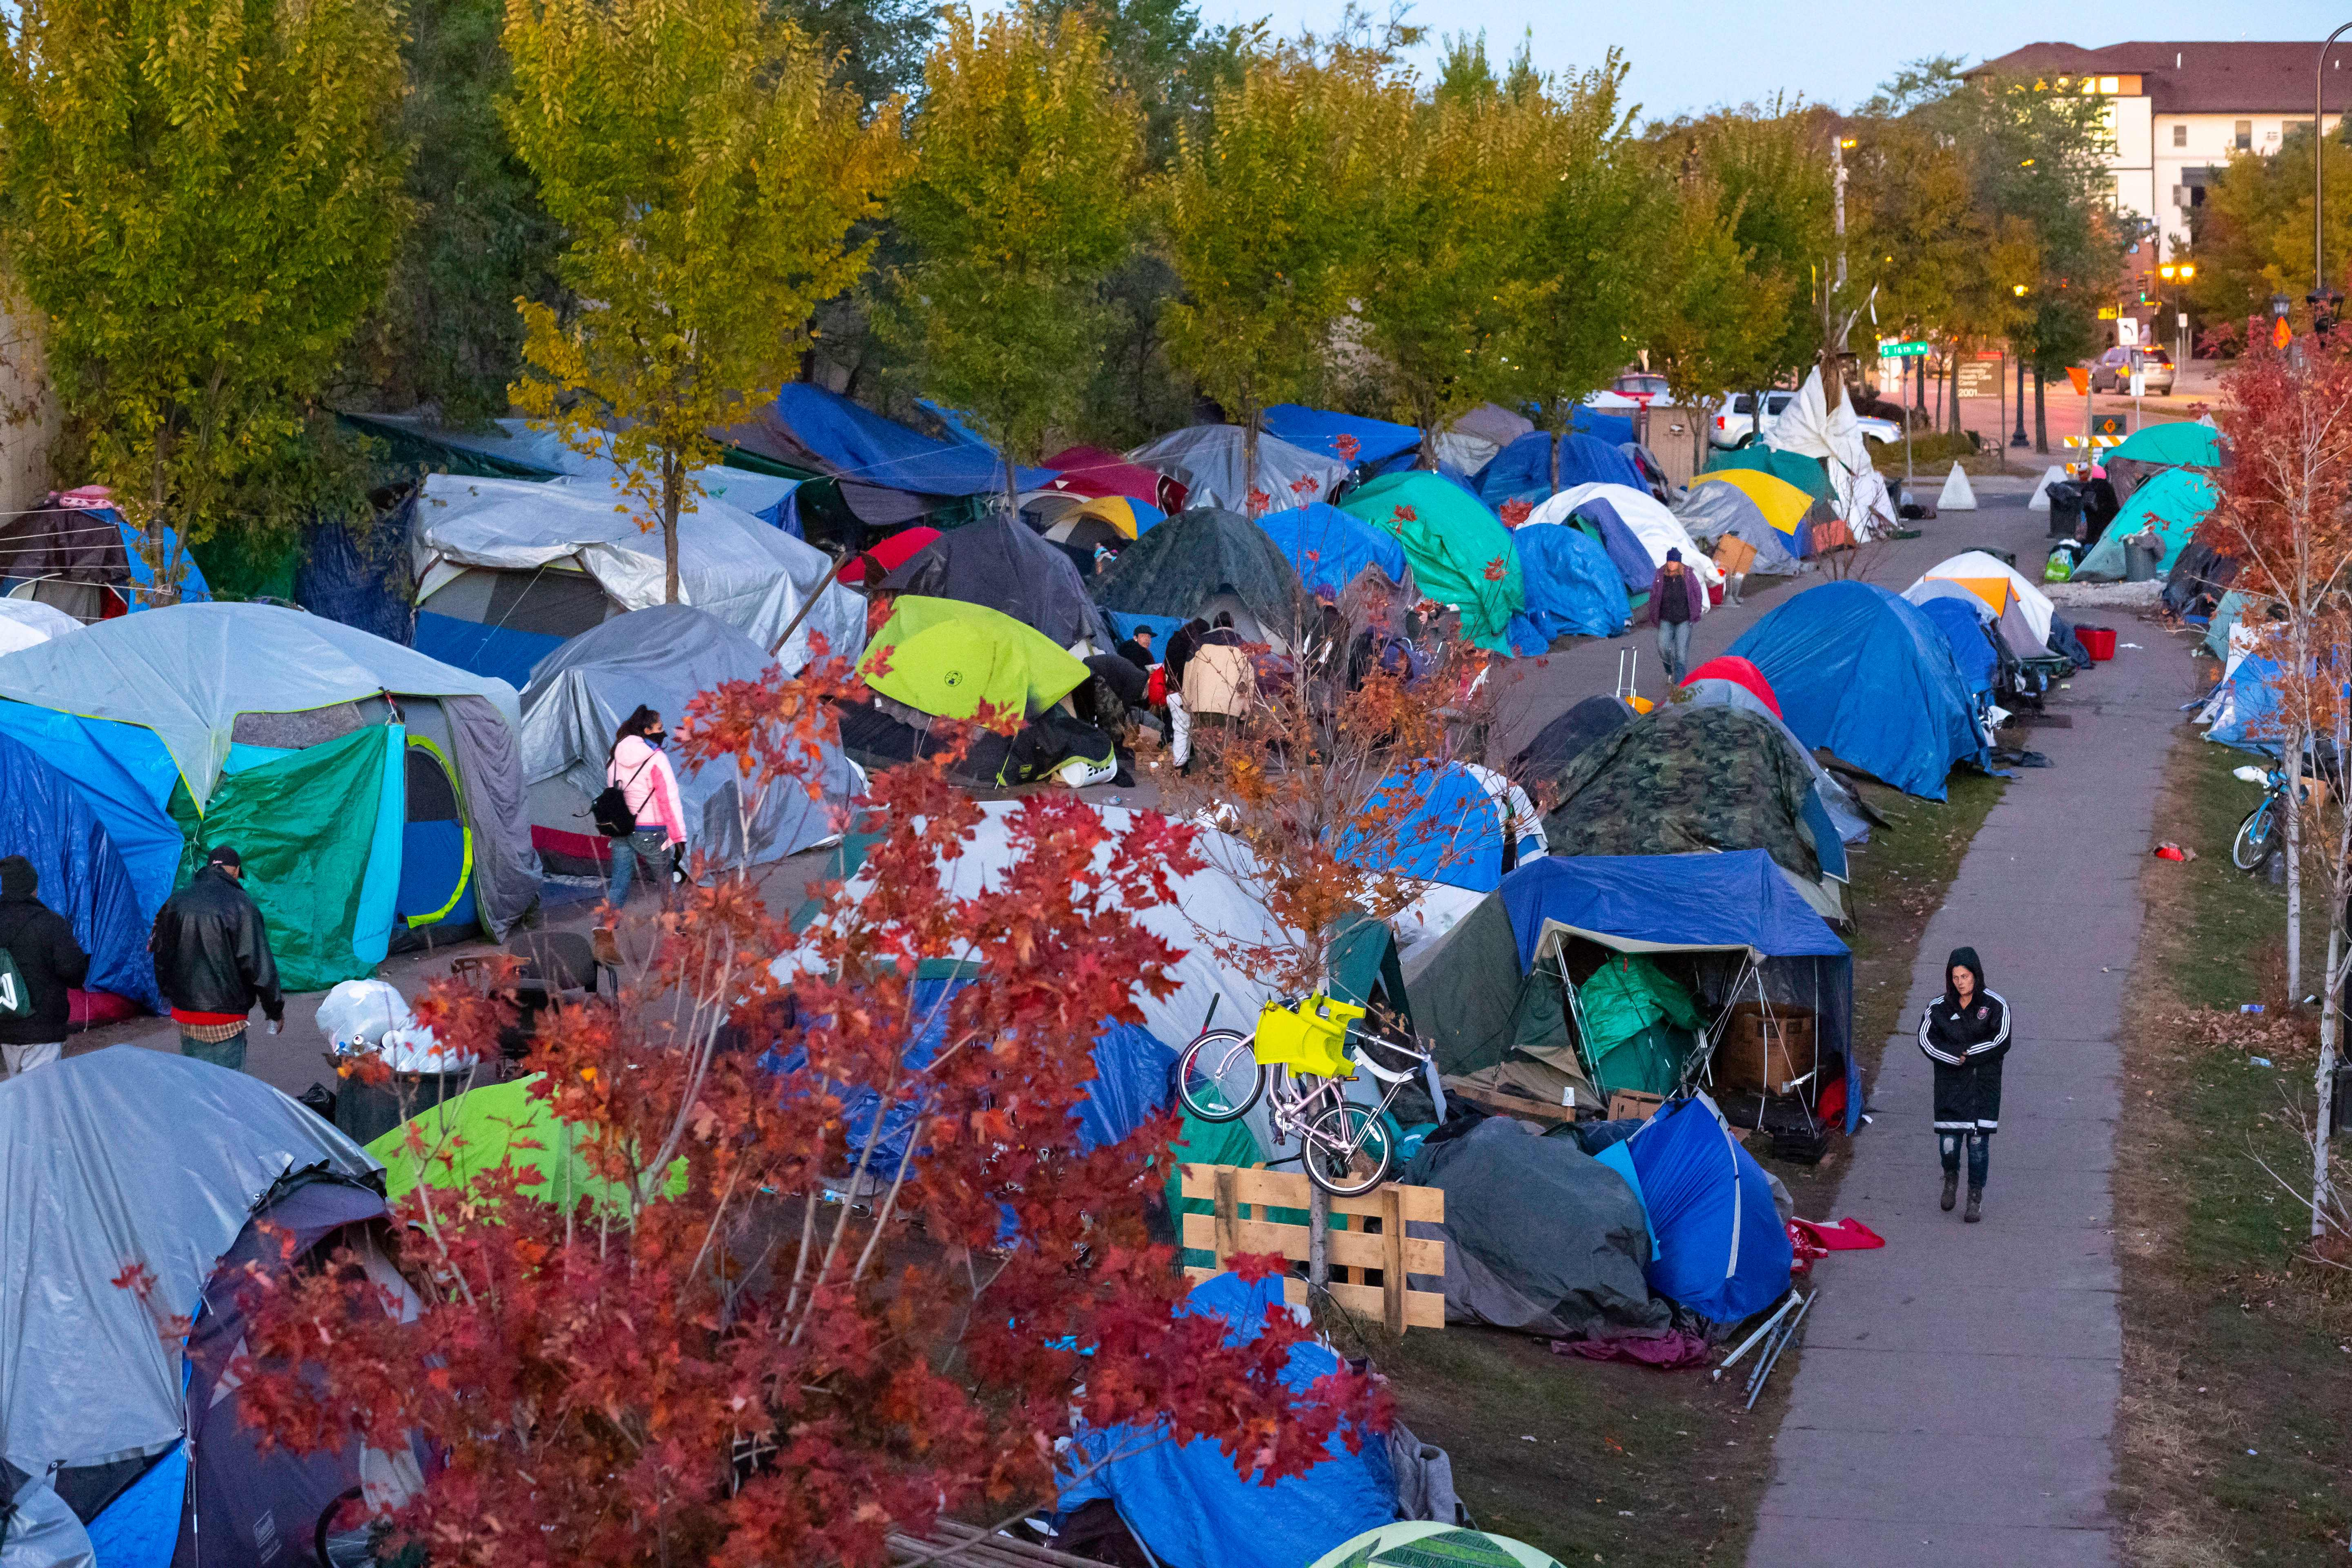 The tent city near the Little Earth housing project which set up on early August, 2018 is along Cedar and Hiawatha Avenues in Minneapolis, Minnesota. (KEREM YUCEL/AFP via Getty Images)